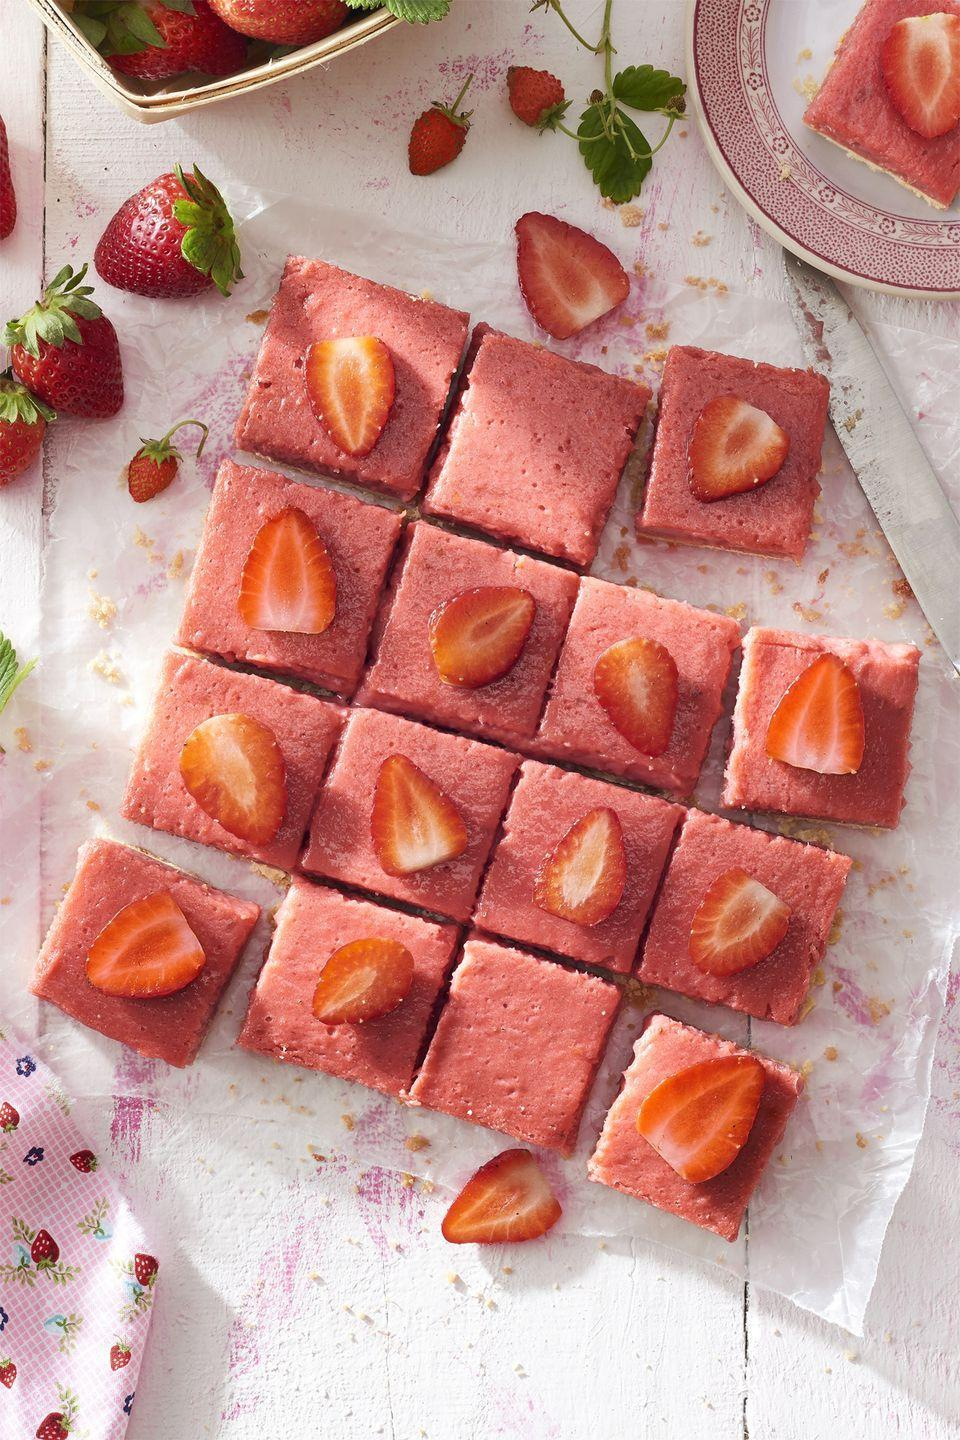 "<p><span class=""redactor-unlink"">If you need a last-minute sweet for Mother's Day, these strawberry-rhubarb bars are so easy to make and come together in just half an hour. With 16 bars, there's plenty to go around!</span></p><p><strong><a href=""https://www.countryliving.com/food-drinks/recipes/a41984/strawberry-rhubarb-shortbread-bars-recipe/"" rel=""nofollow noopener"" target=""_blank"" data-ylk=""slk:Get the recipe"" class=""link rapid-noclick-resp"">Get the recipe</a>.</strong></p><p><a class=""link rapid-noclick-resp"" href=""https://www.amazon.com/Professional-Cross-Cooling-Sheet-Grate/dp/B0001MS3DI?tag=syn-yahoo-20&ascsubtag=%5Bartid%7C10050.g.4238%5Bsrc%7Cyahoo-us"" rel=""nofollow noopener"" target=""_blank"" data-ylk=""slk:SHOP COOLING RACKS"">SHOP COOLING RACKS</a> </p>"